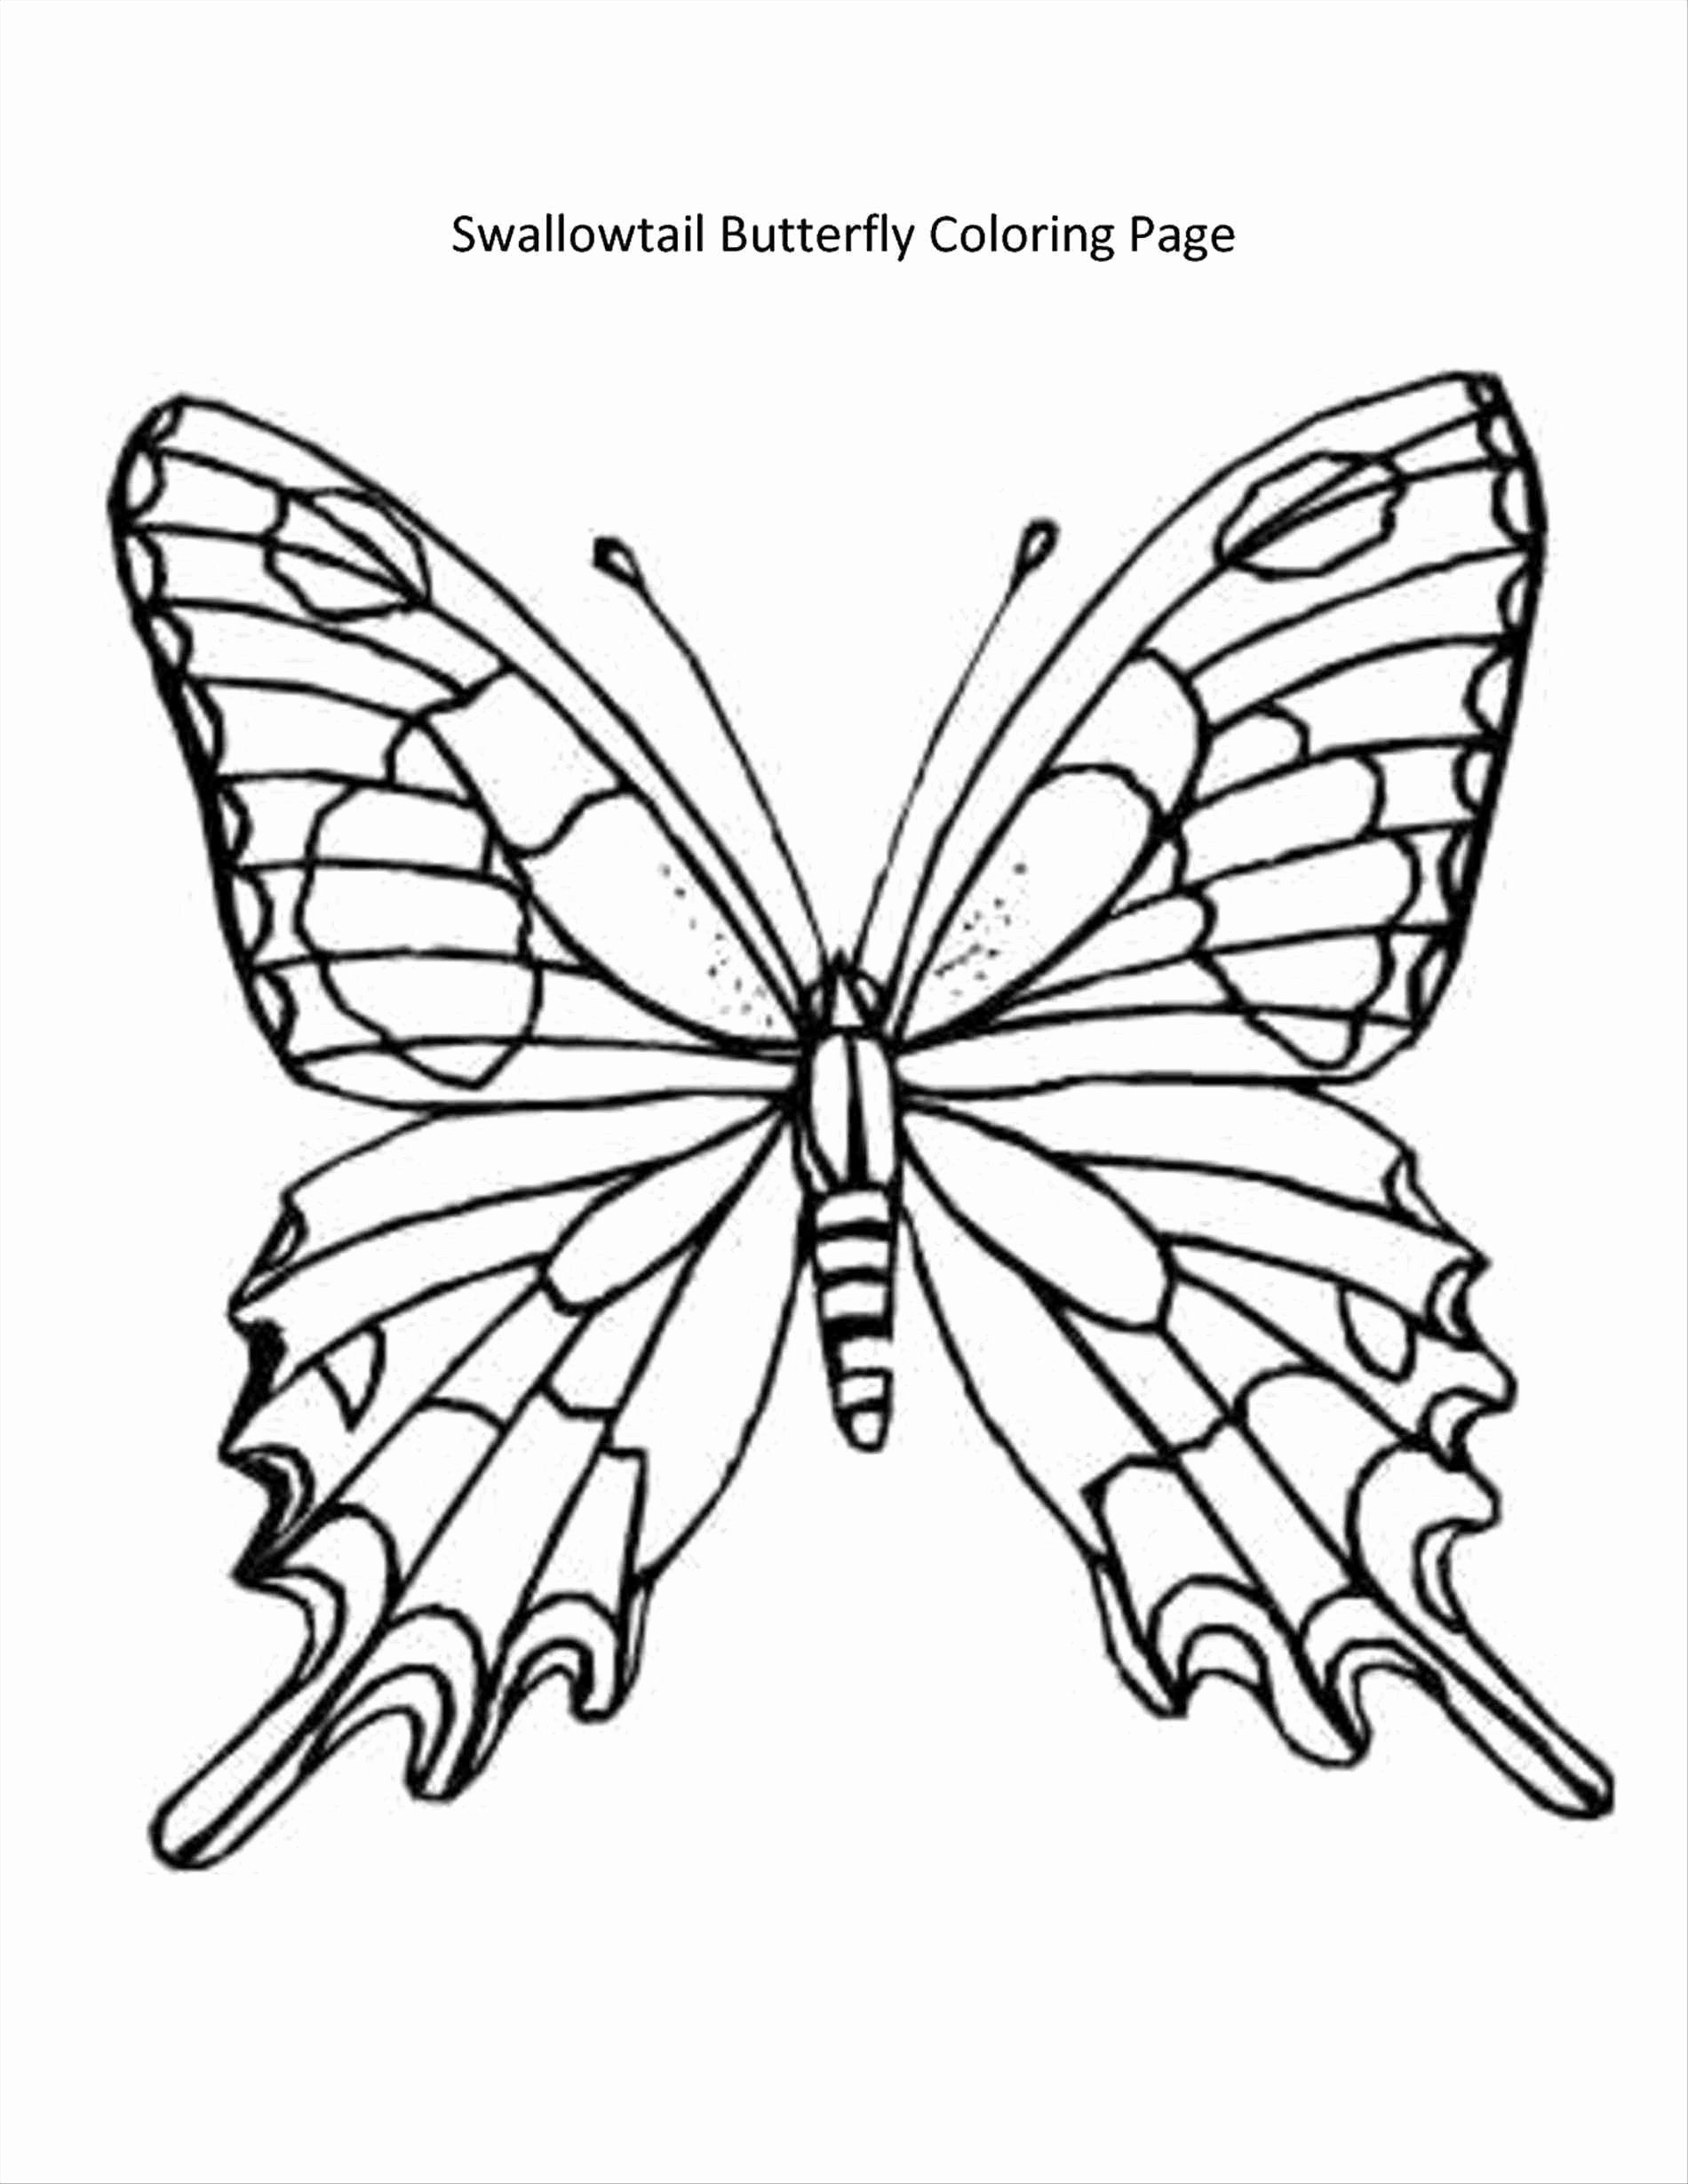 Monarch Butterfly Coloring Page New Pages Coloring Pages Coloring Butterfly Tot Butterfly Coloring Page Flower Coloring Pages Butterfly Printable